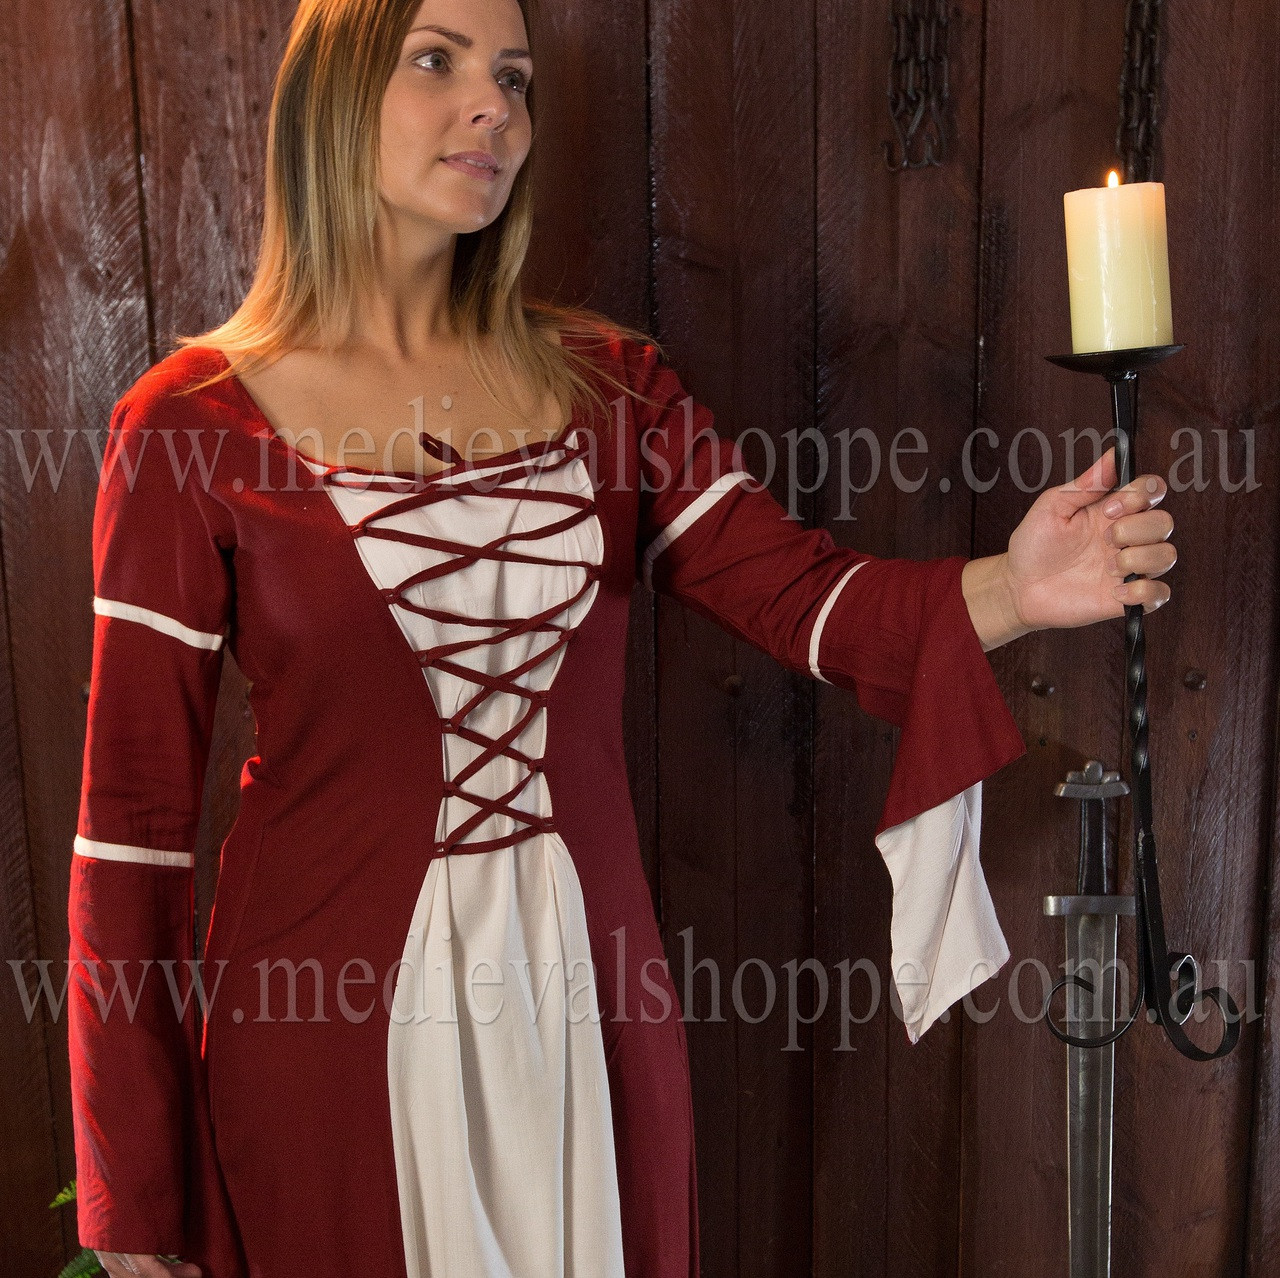 Red & White Medieval Dress - Gown - Renaissance Costume